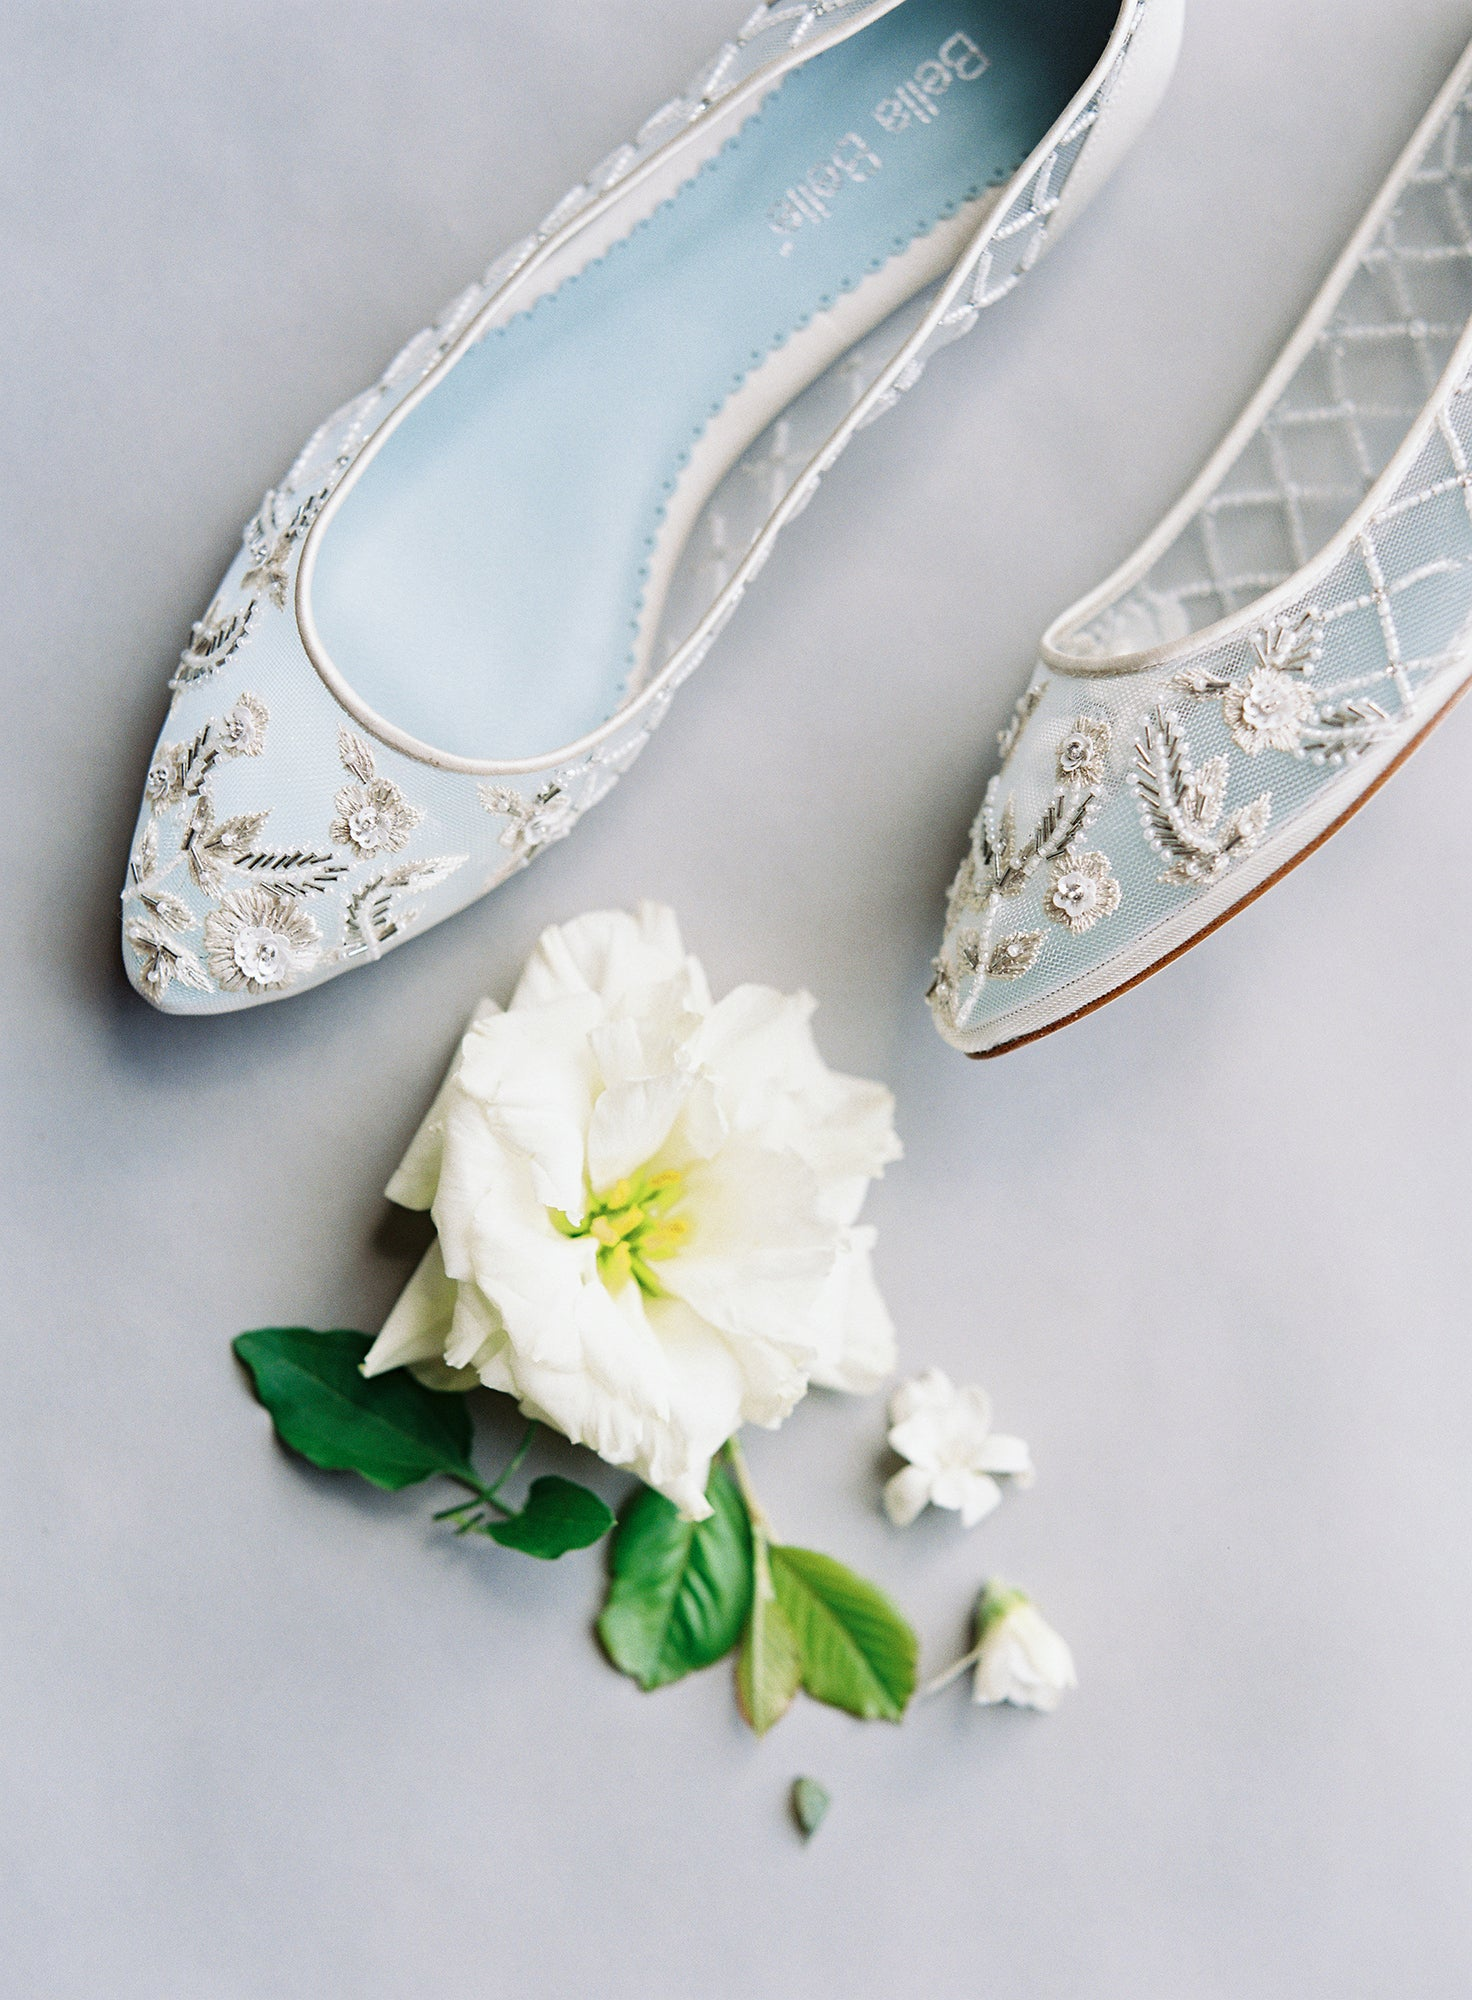 Bella belle allegra COMFORTABLE BEADED WEDDING FLATS